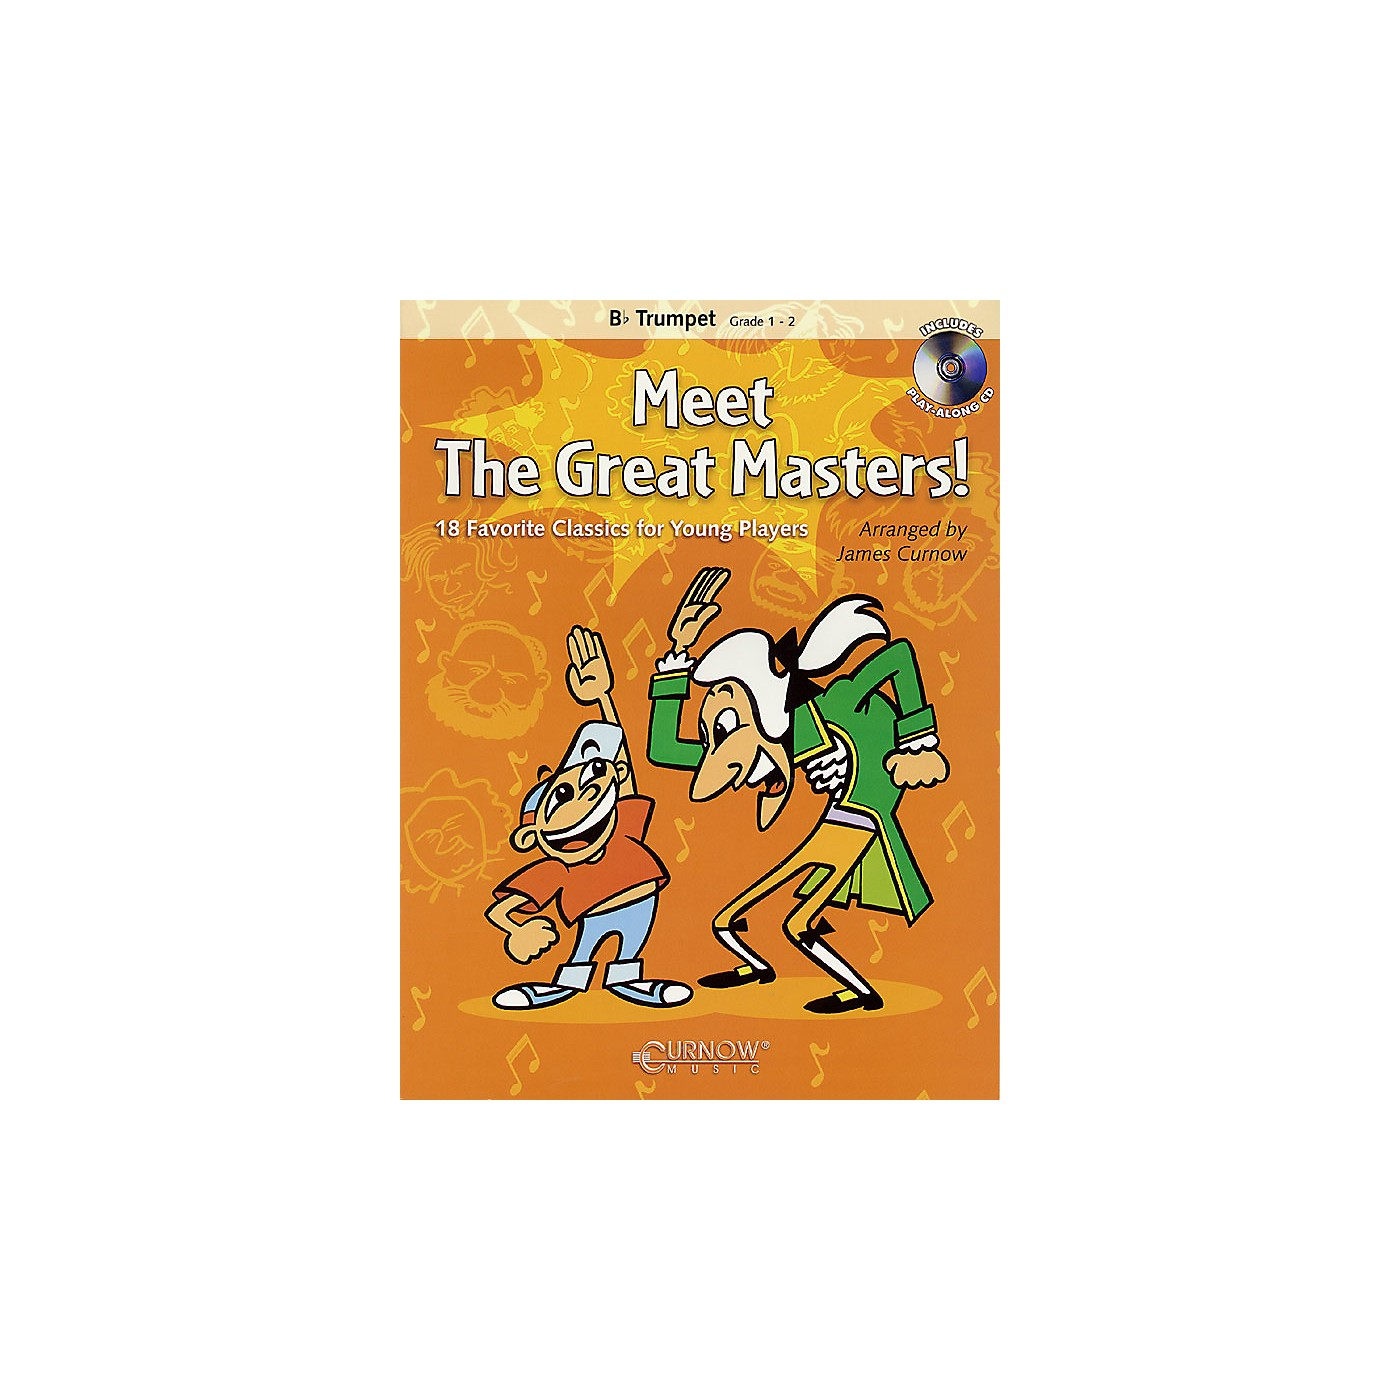 Curnow Music Meet the Great Masters! (Bb Trumpet - Grade 1-2) Concert Band Level 1-2 thumbnail